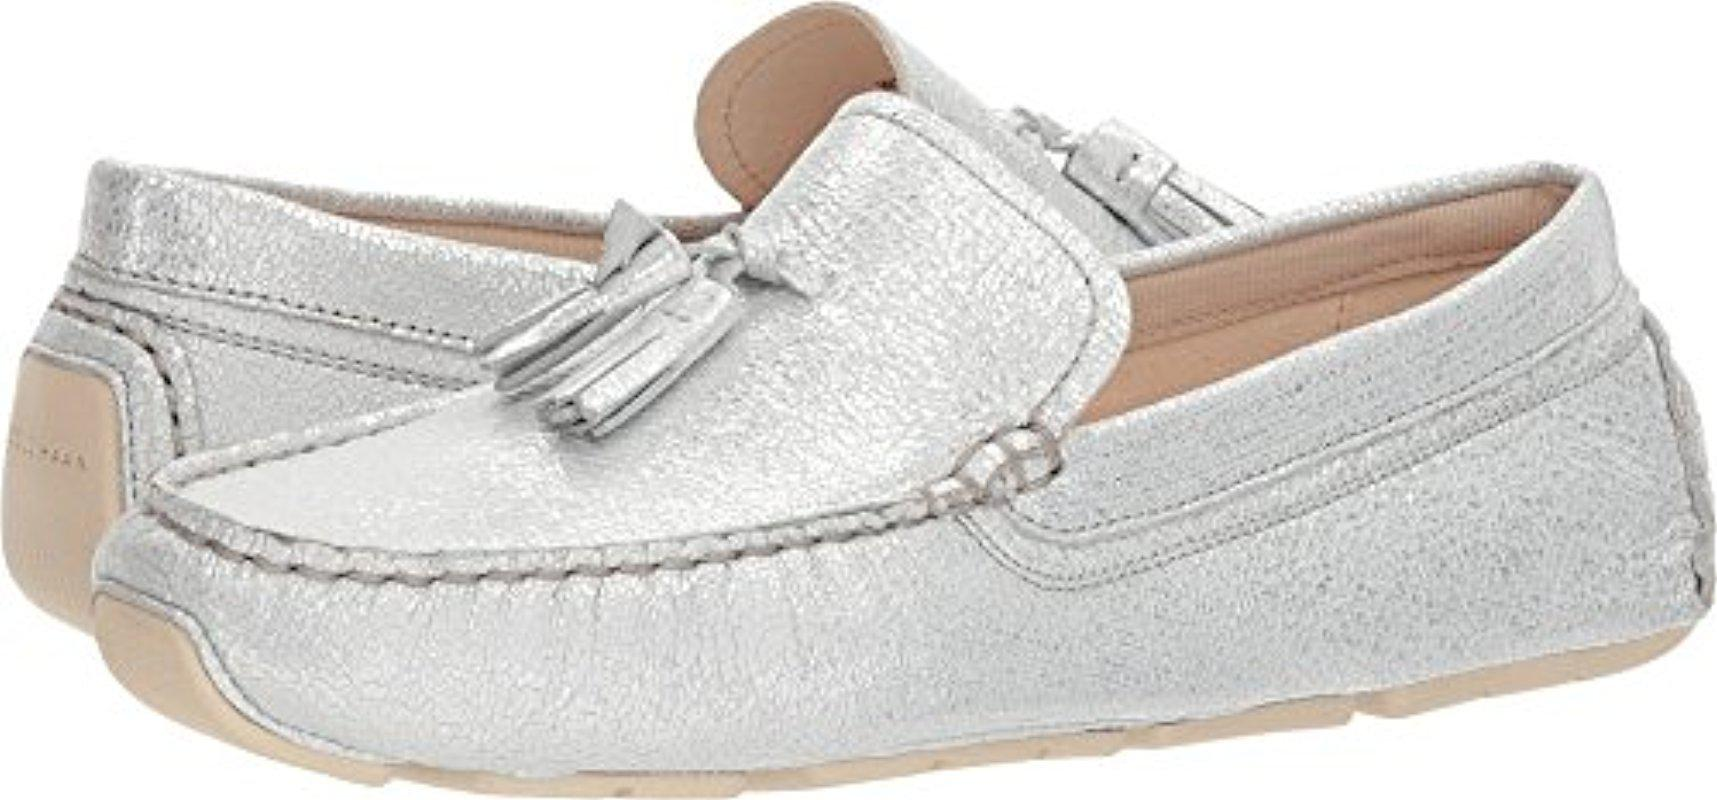 371c238a886 Lyst - Cole Haan Rodeo Tassel Driver Loafer - Save 18.34862385321101%